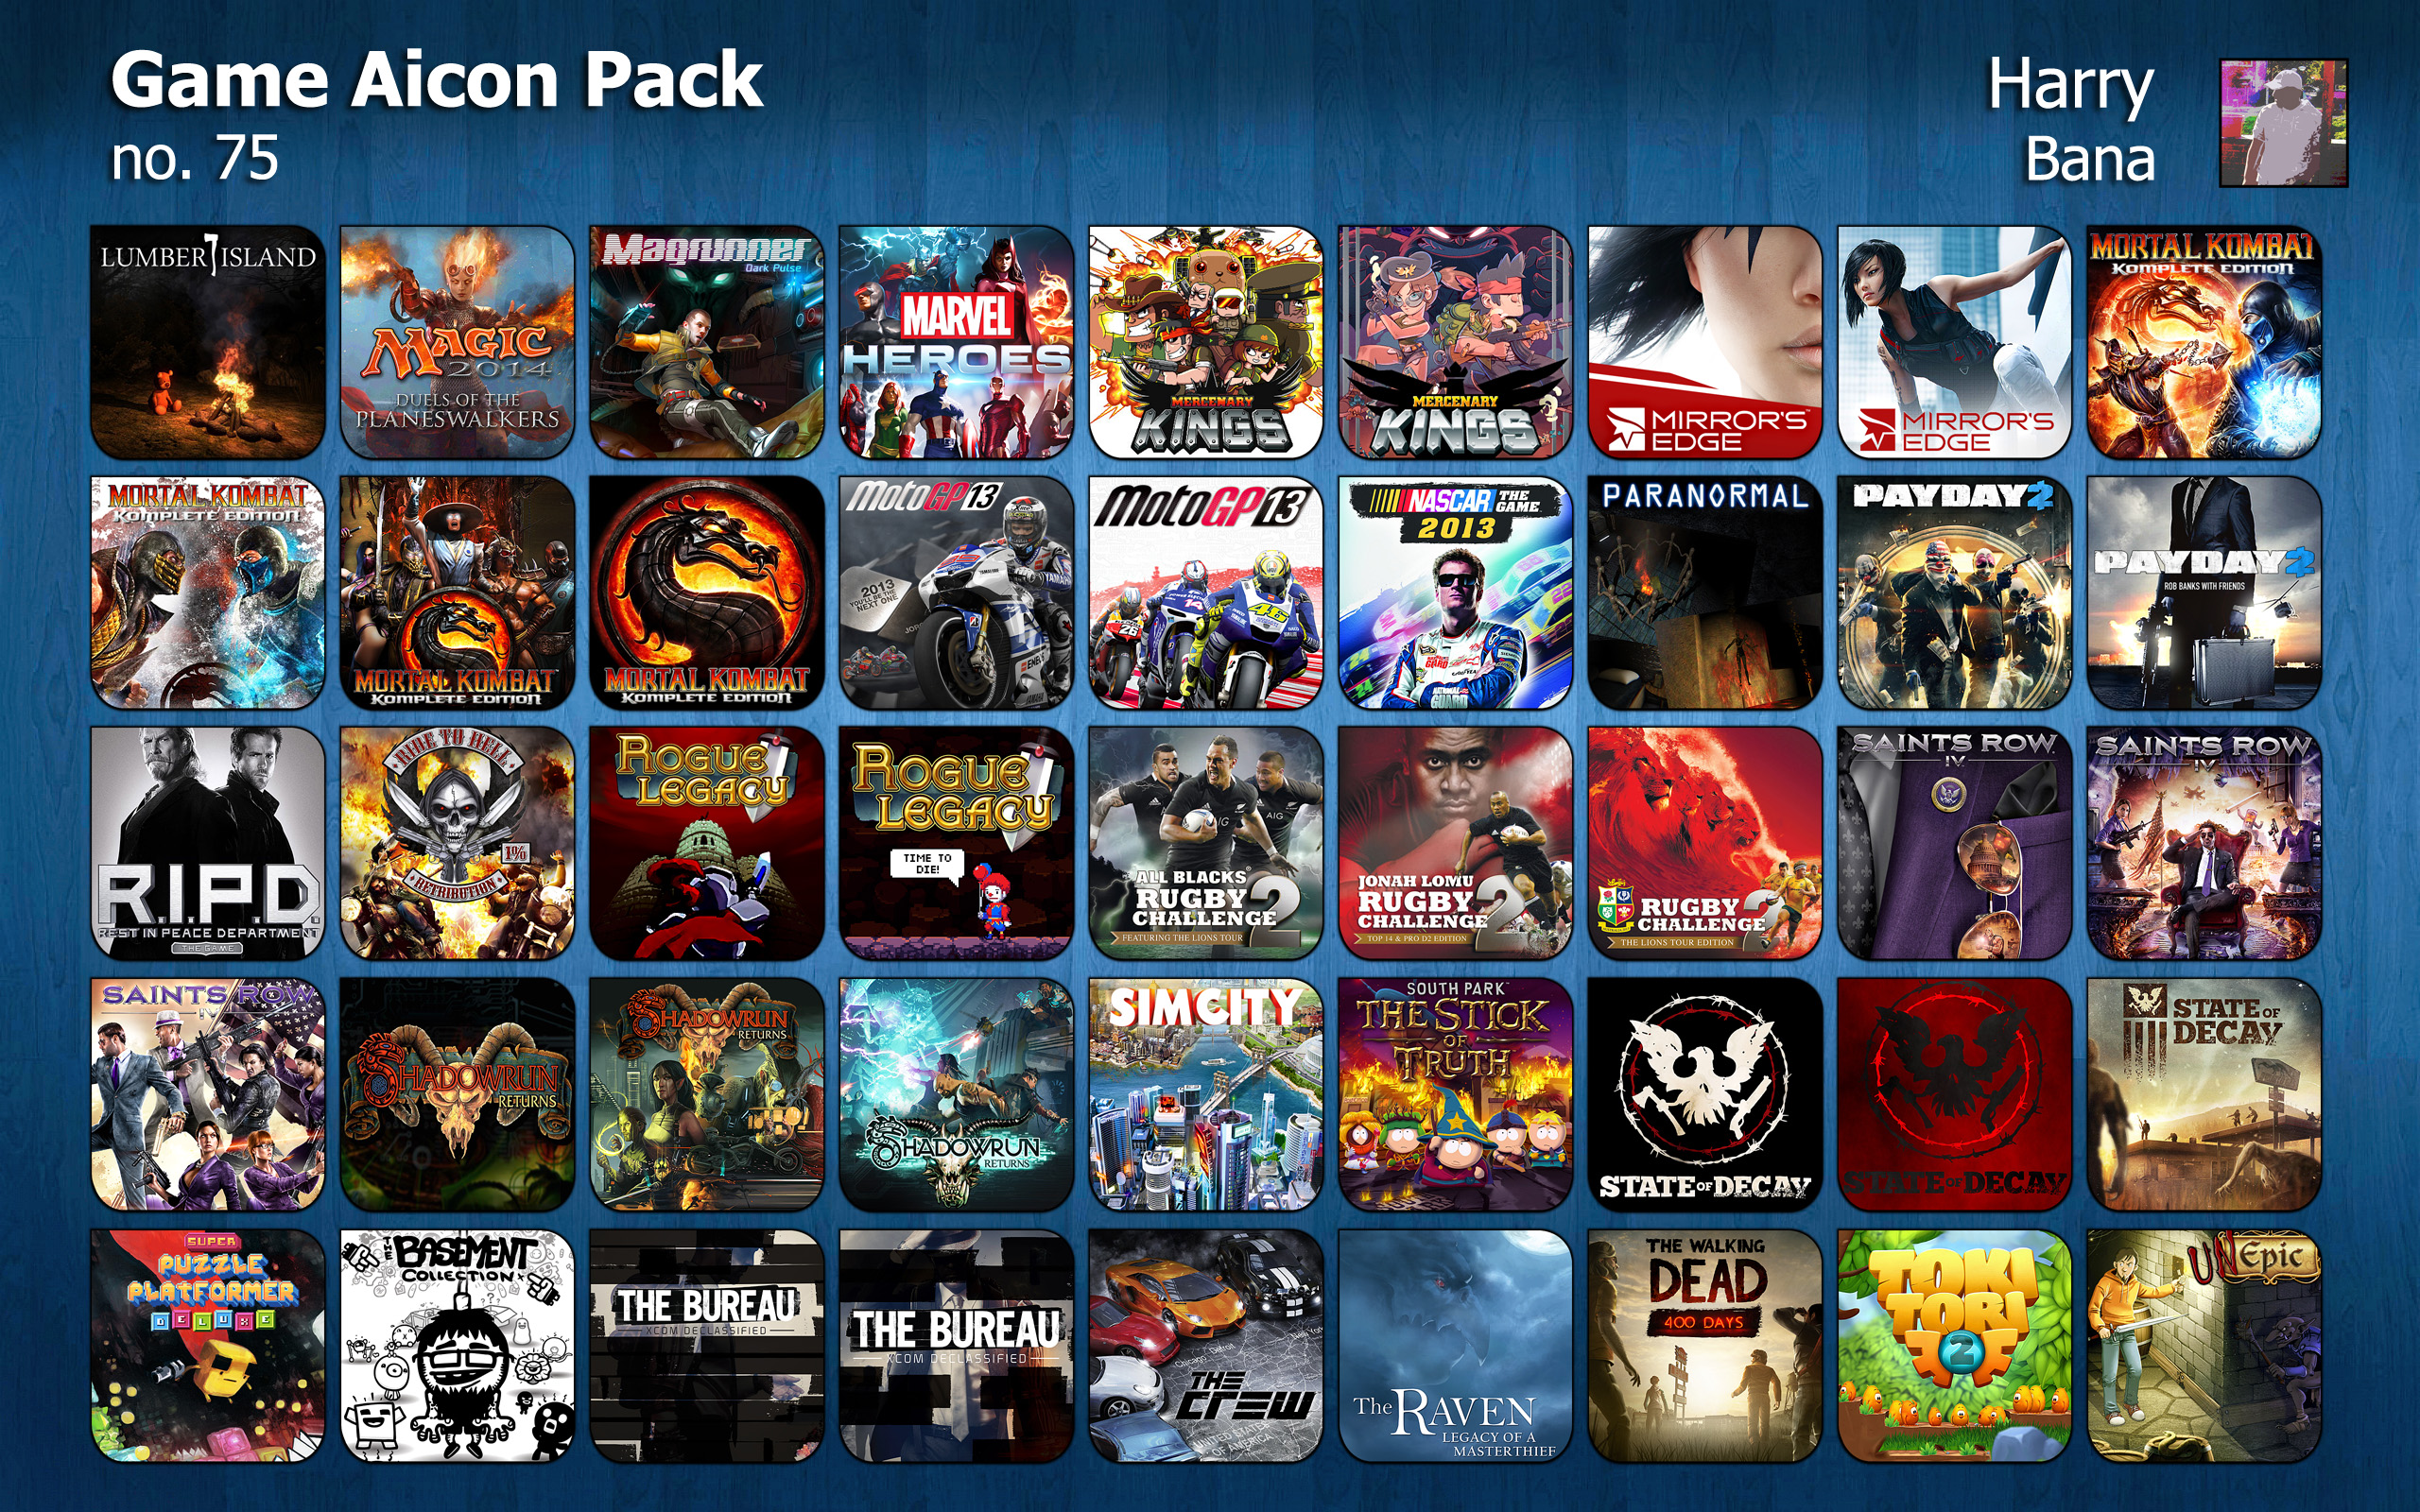 Game Aicon Pack 75 by HarryBana